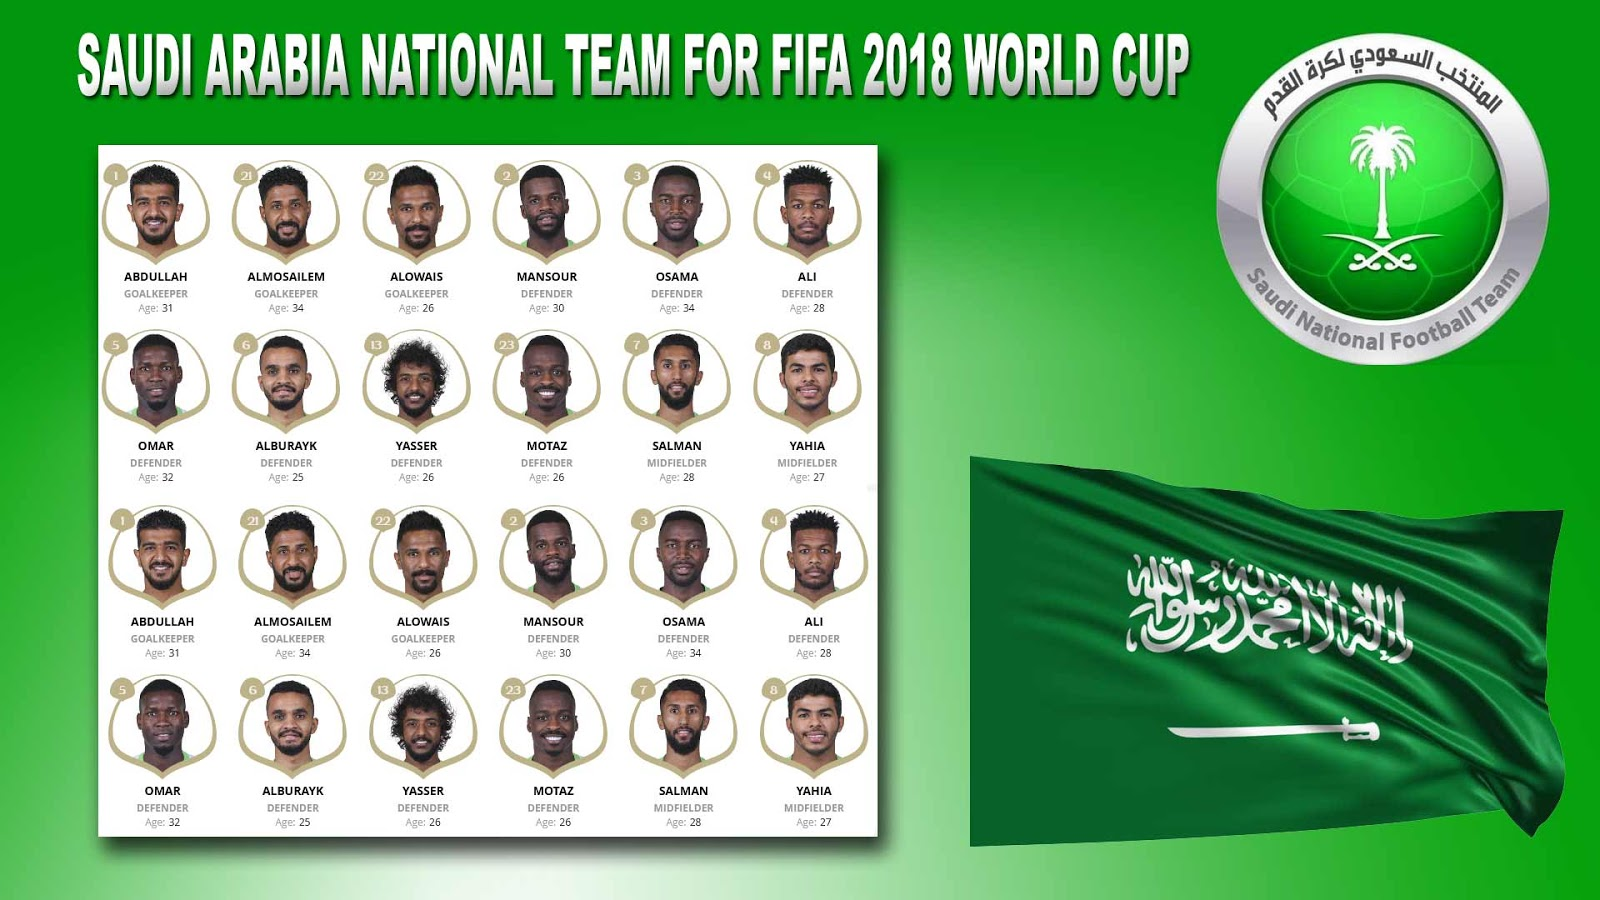 Squad List of Team Saudi Arabia at FIFA 2018 World Cup